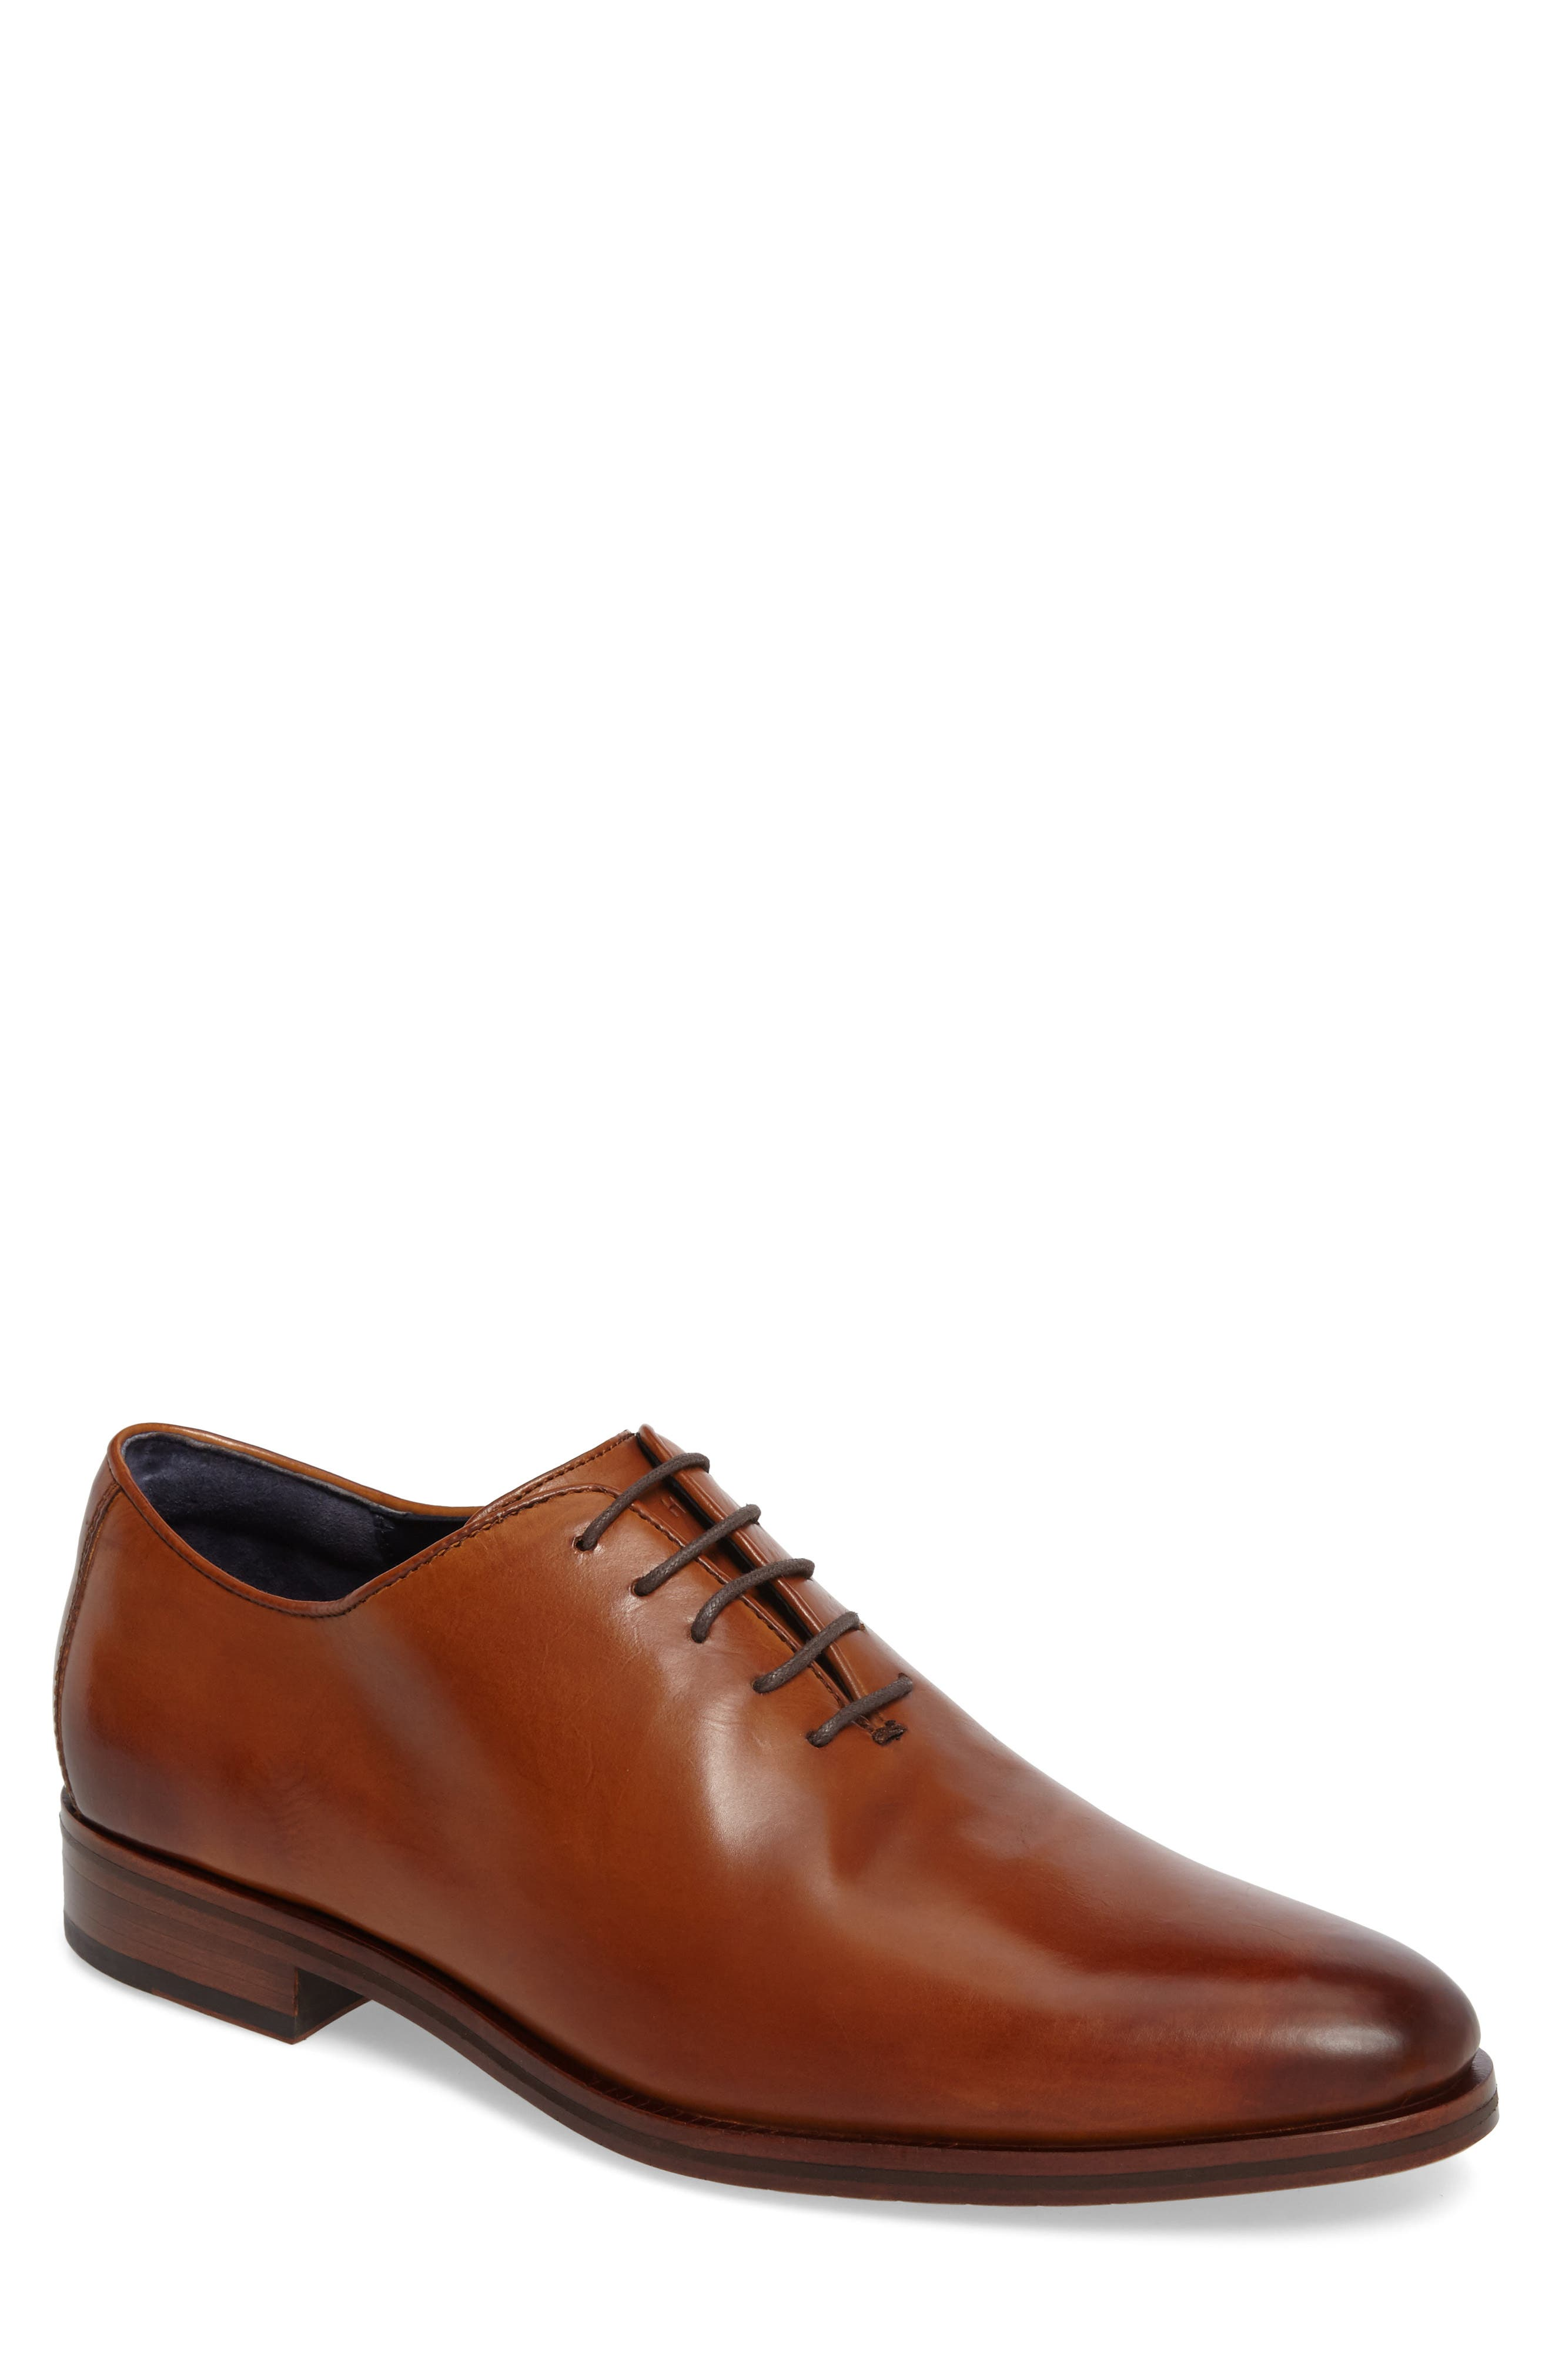 Cole Haan Washington Grand Plain Toe Oxford, Brown